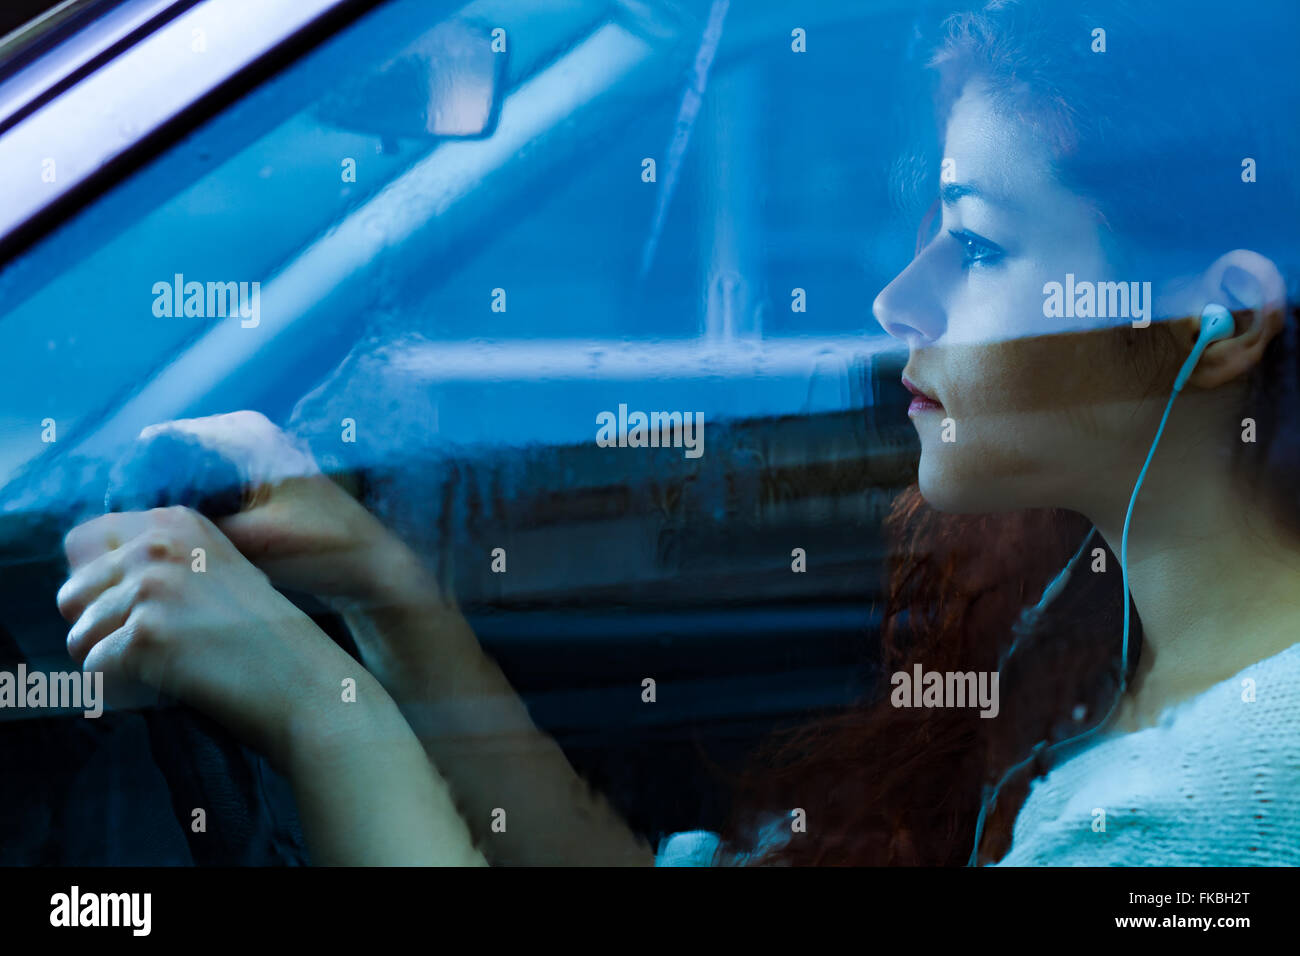 Woman with Earbuds Driving a Car on a Rainy Day - Stock Image